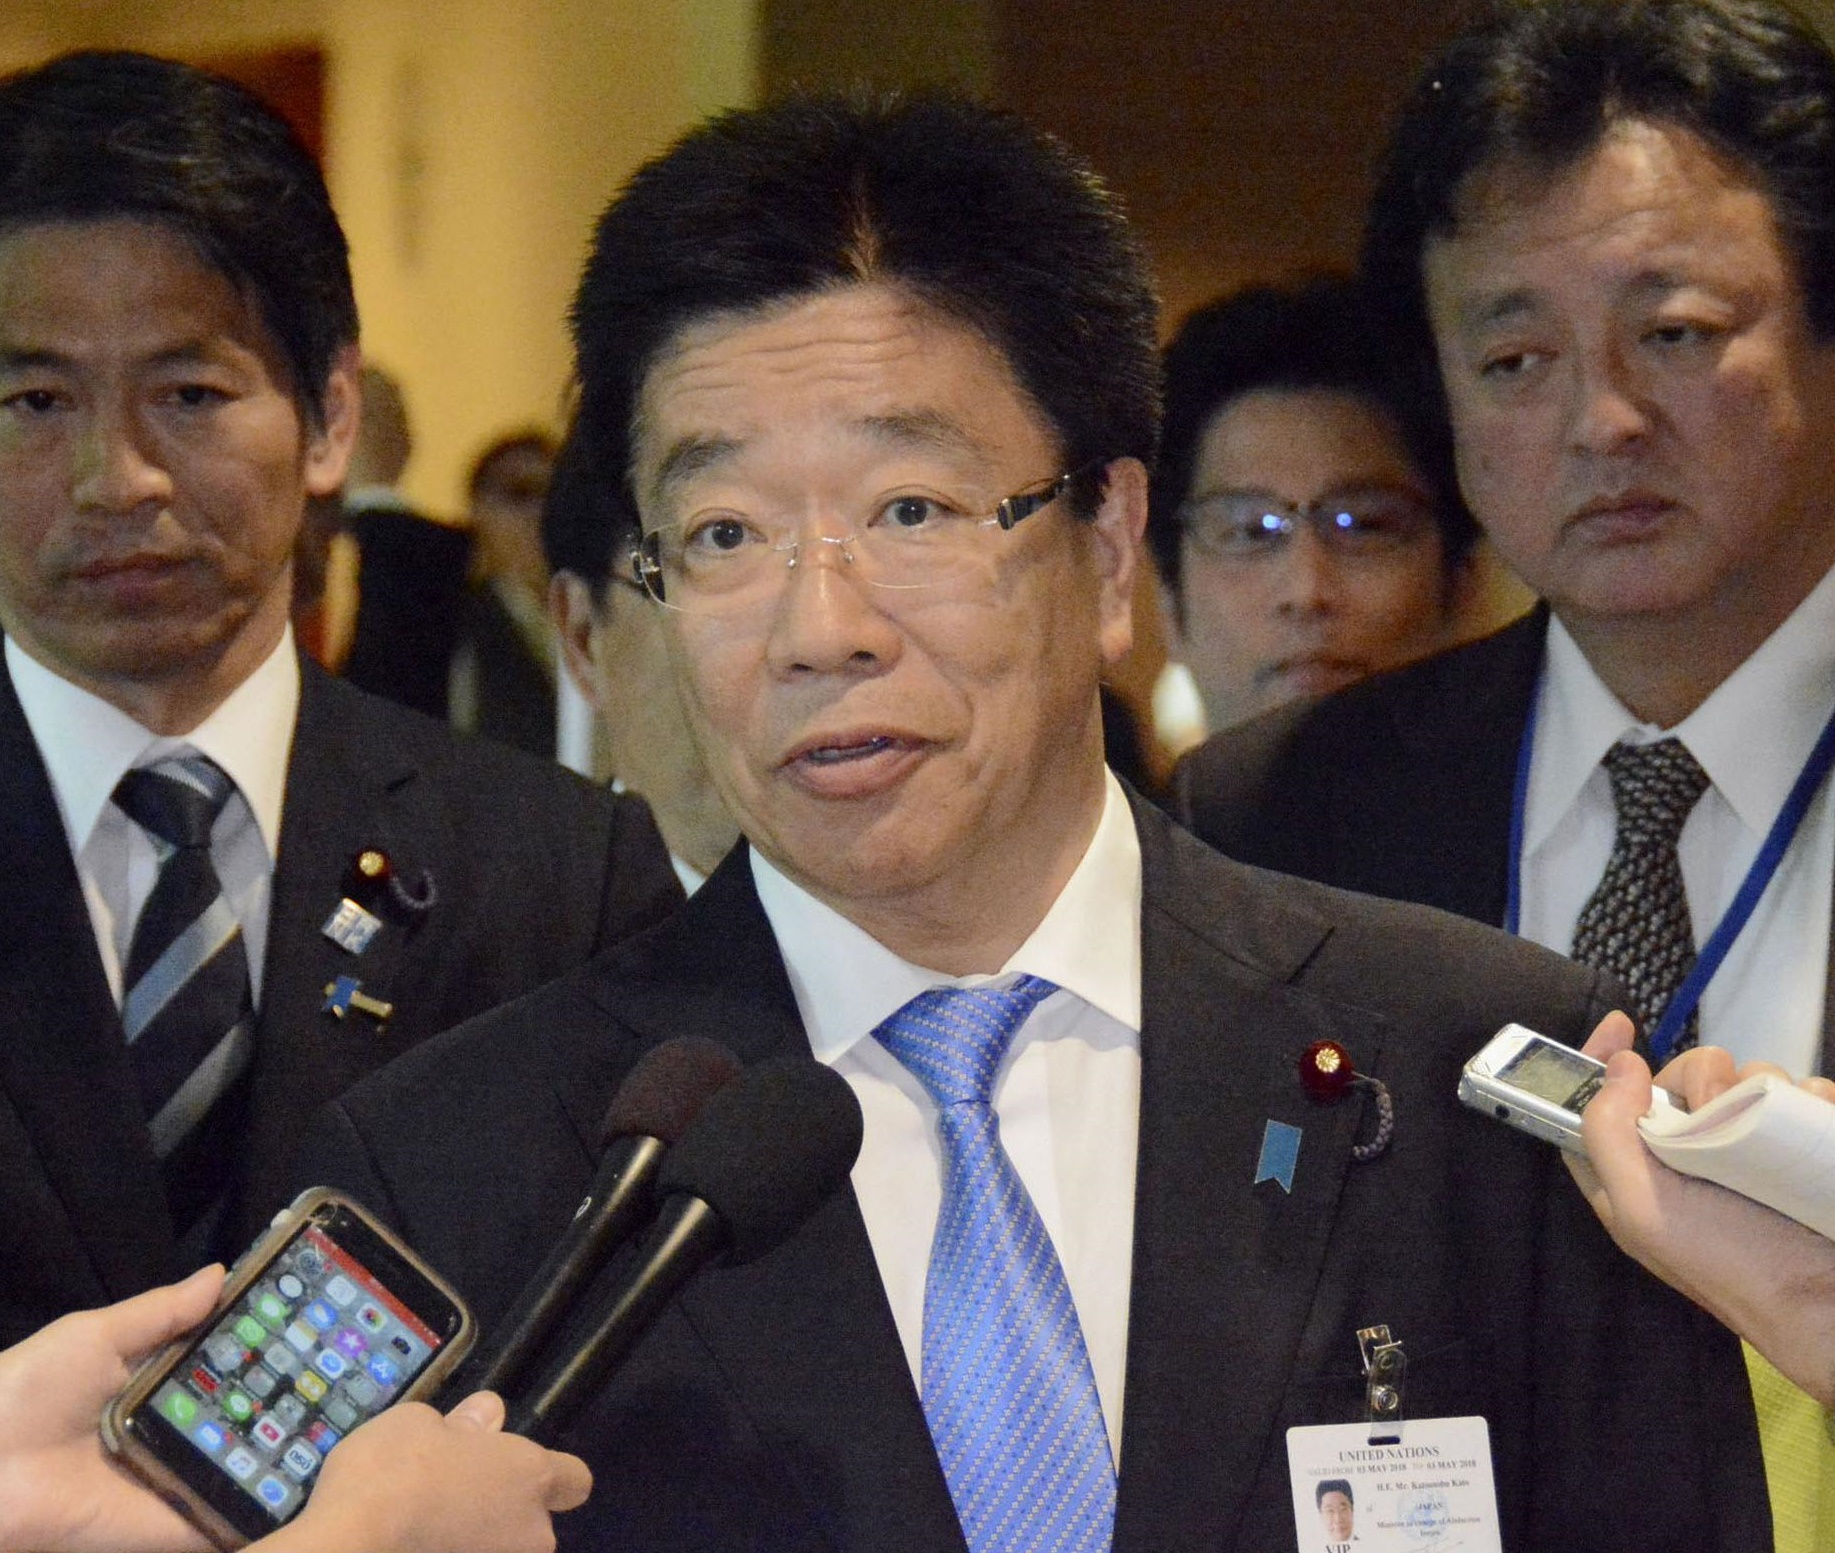 Katsunobu Kato, the Cabinet minister in charge of the abduction issue, speaks to reporters Thursday at the U.N. headquarters in New York. | KYODO